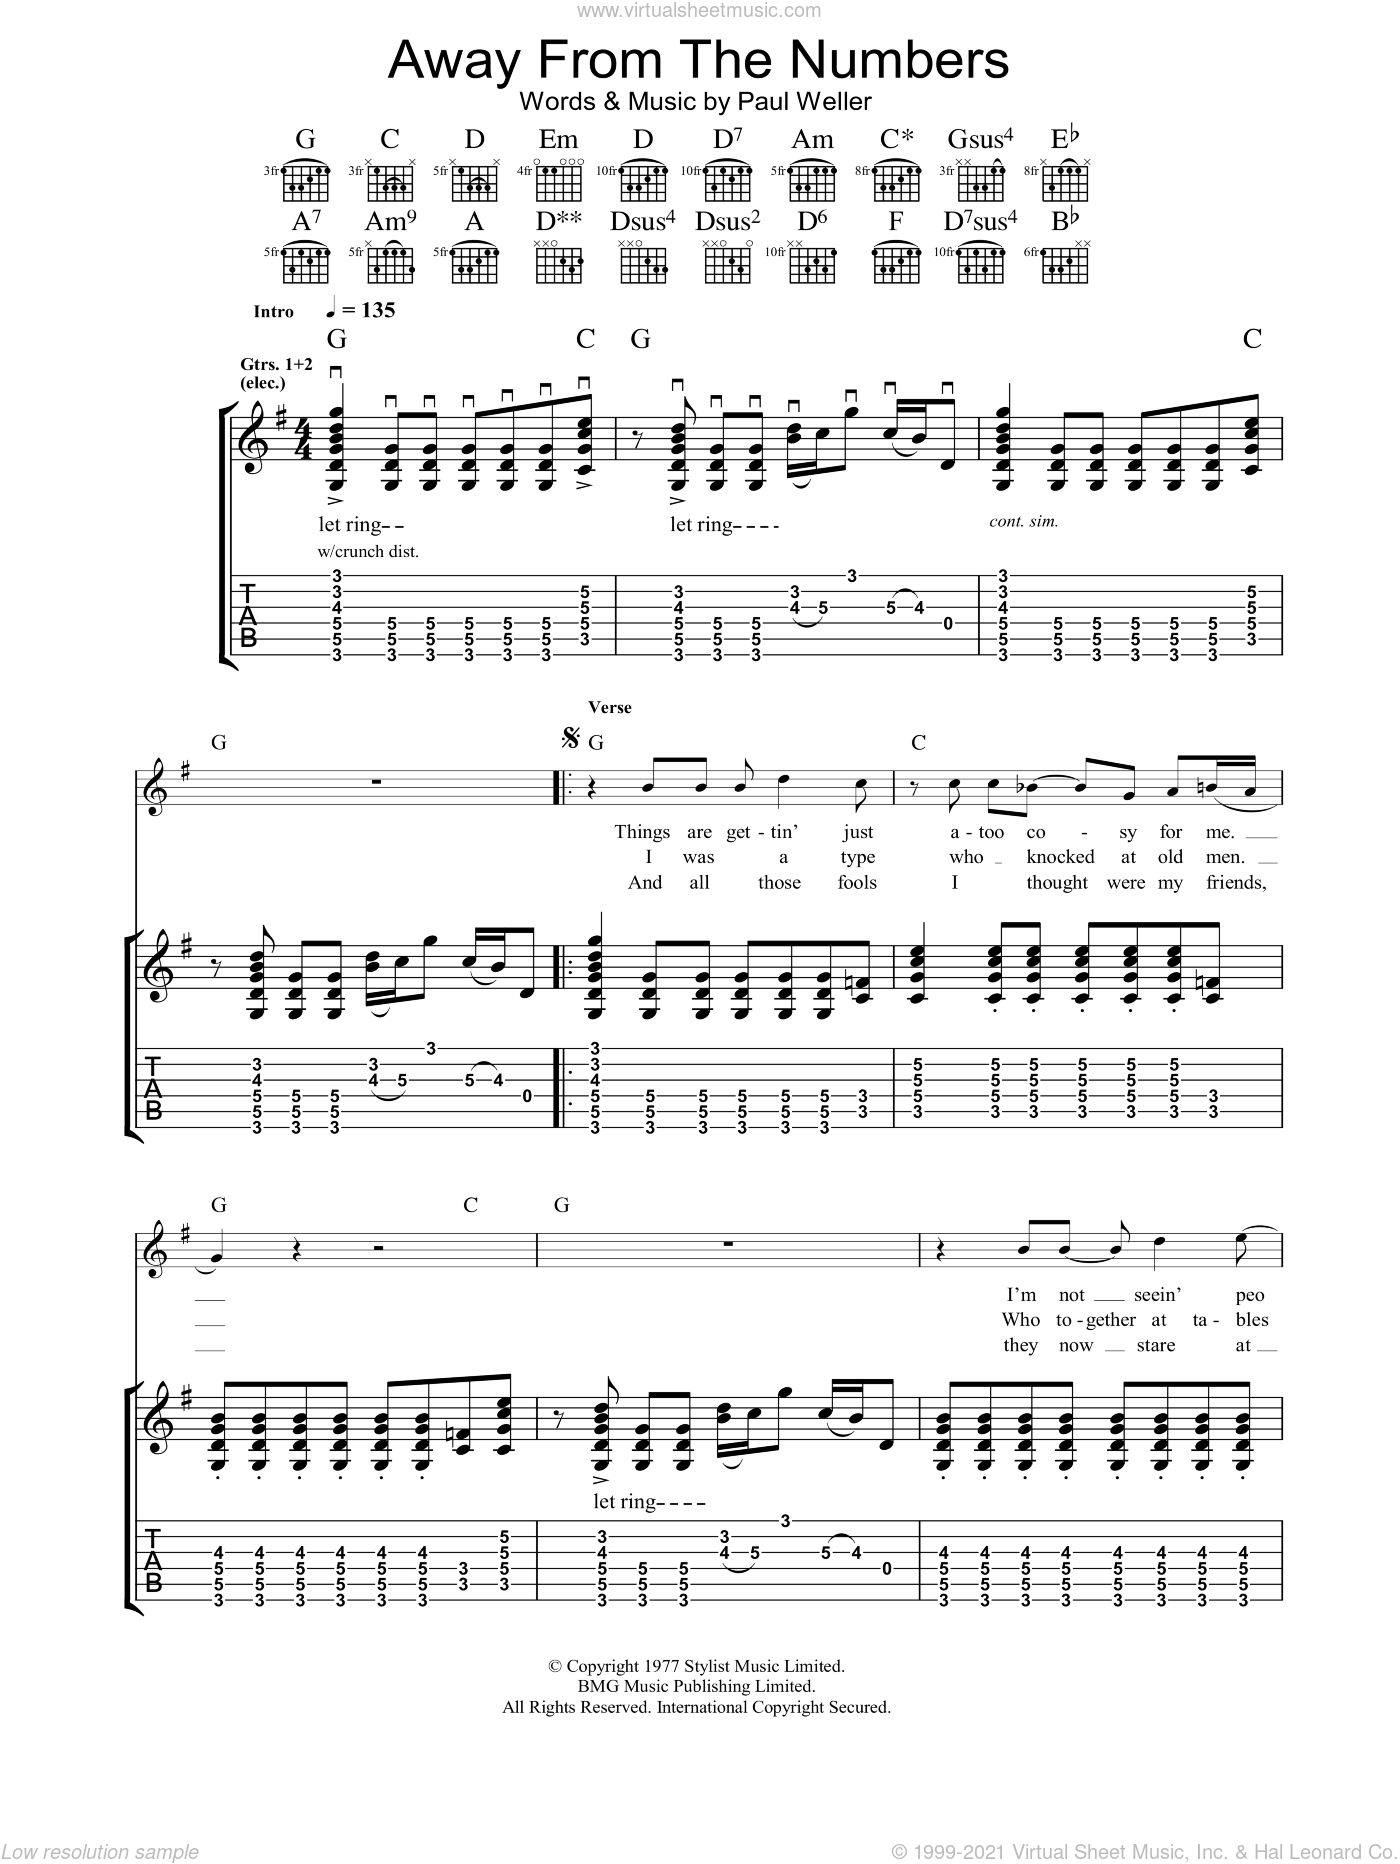 Away From The Numbers sheet music for guitar (tablature) by Paul Weller